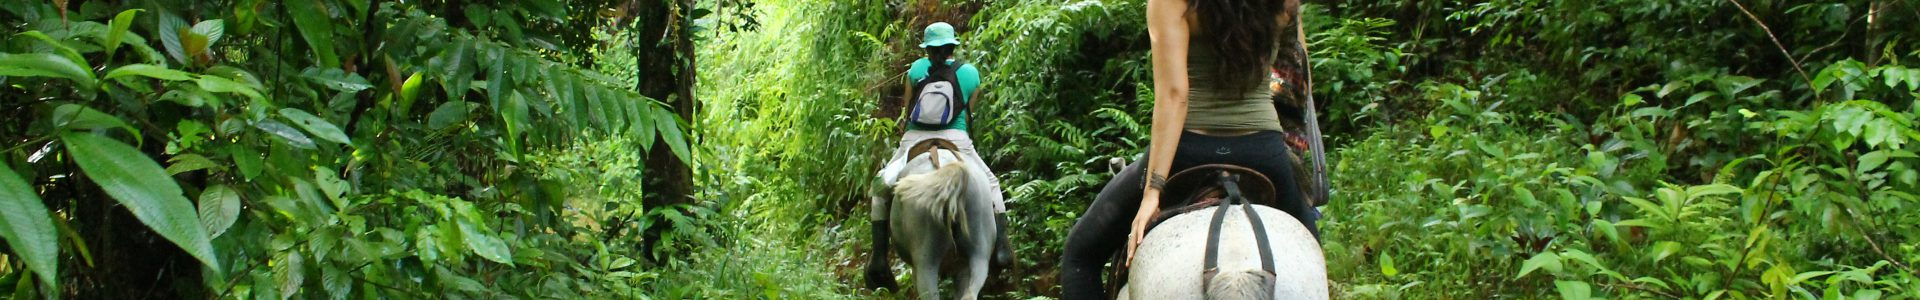 Horseback Jungle Tour